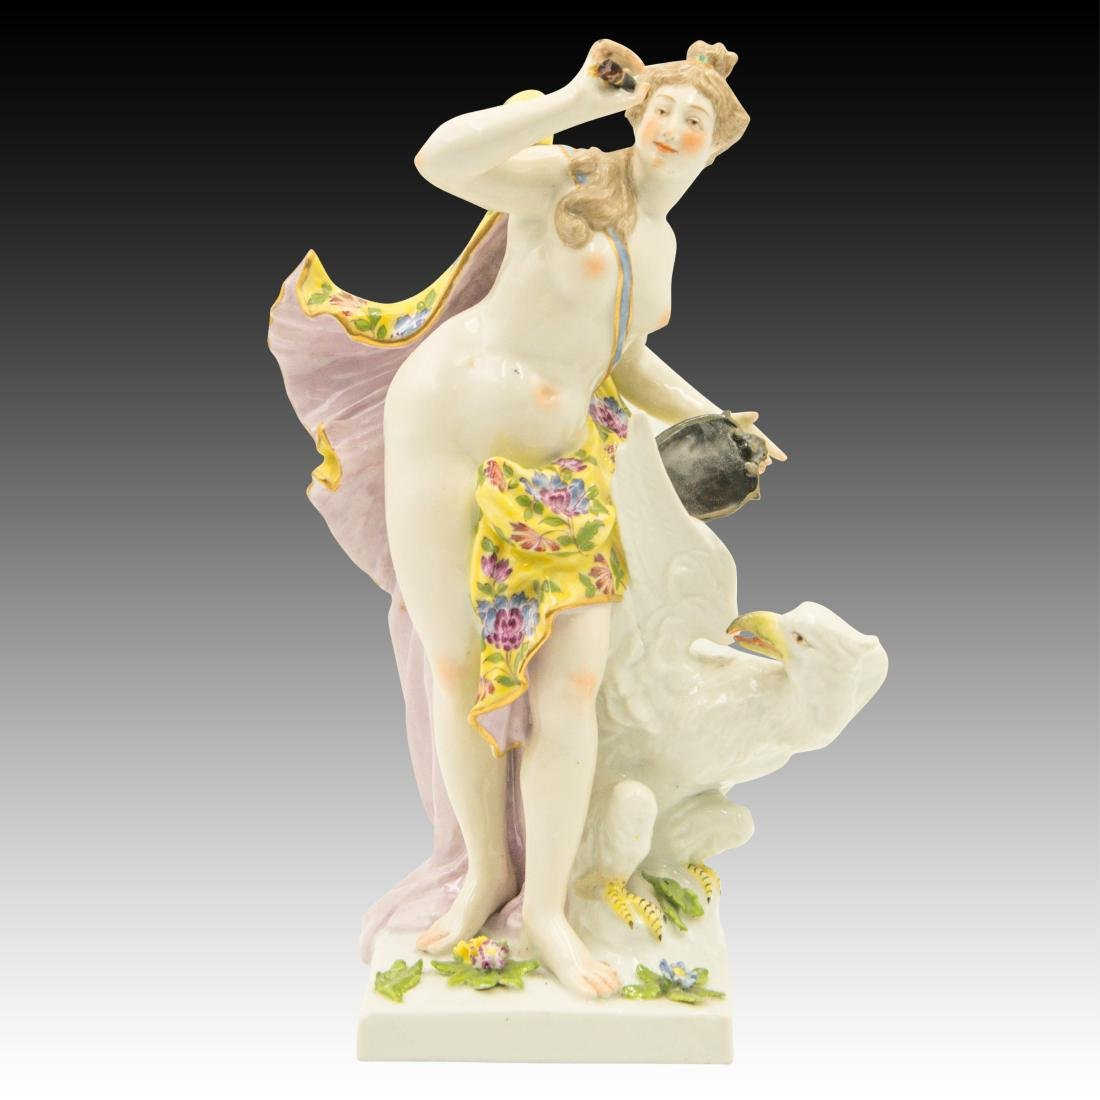 Nude Woman with a Shield and Gryphon Figurine